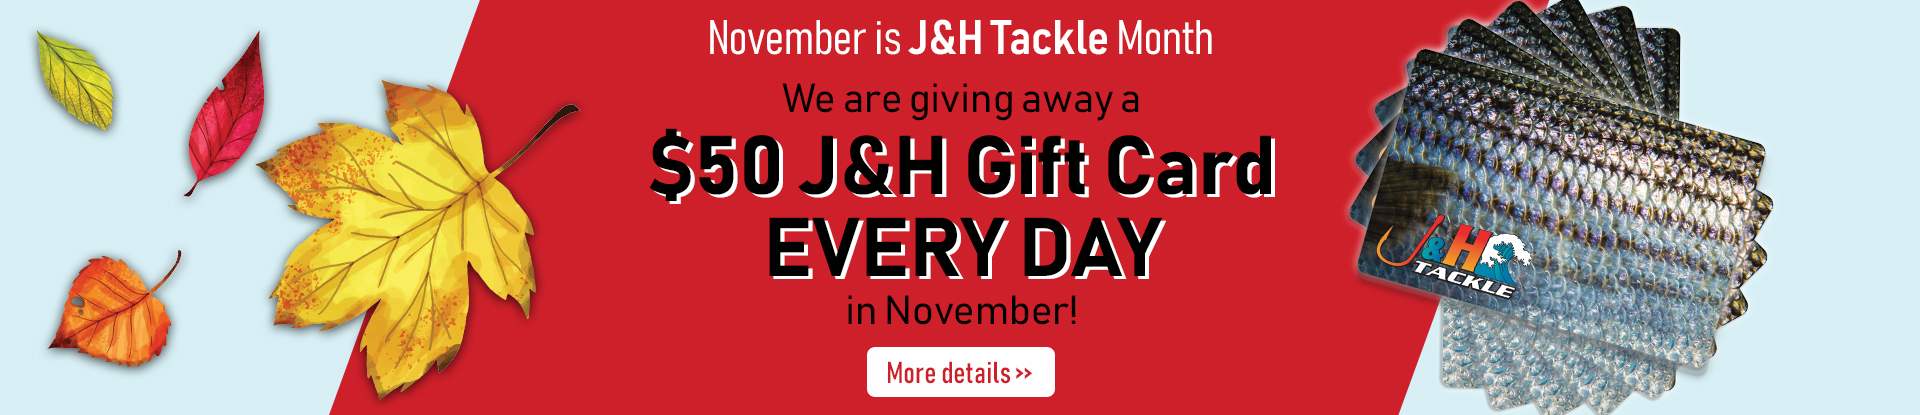 November Is J&H Tackle Month